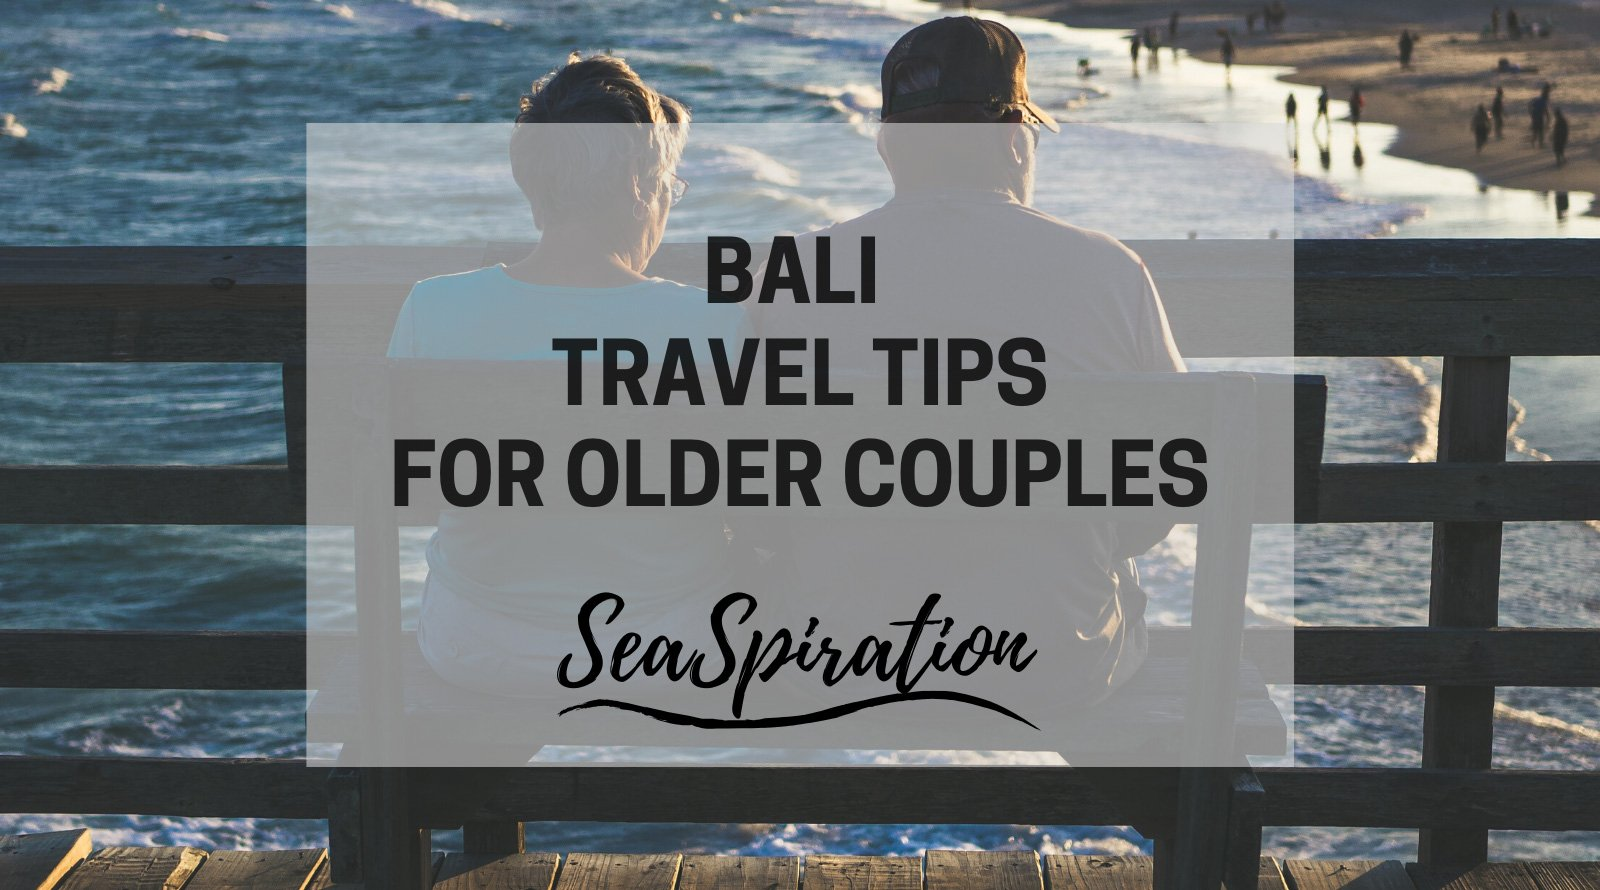 Bali for older couples